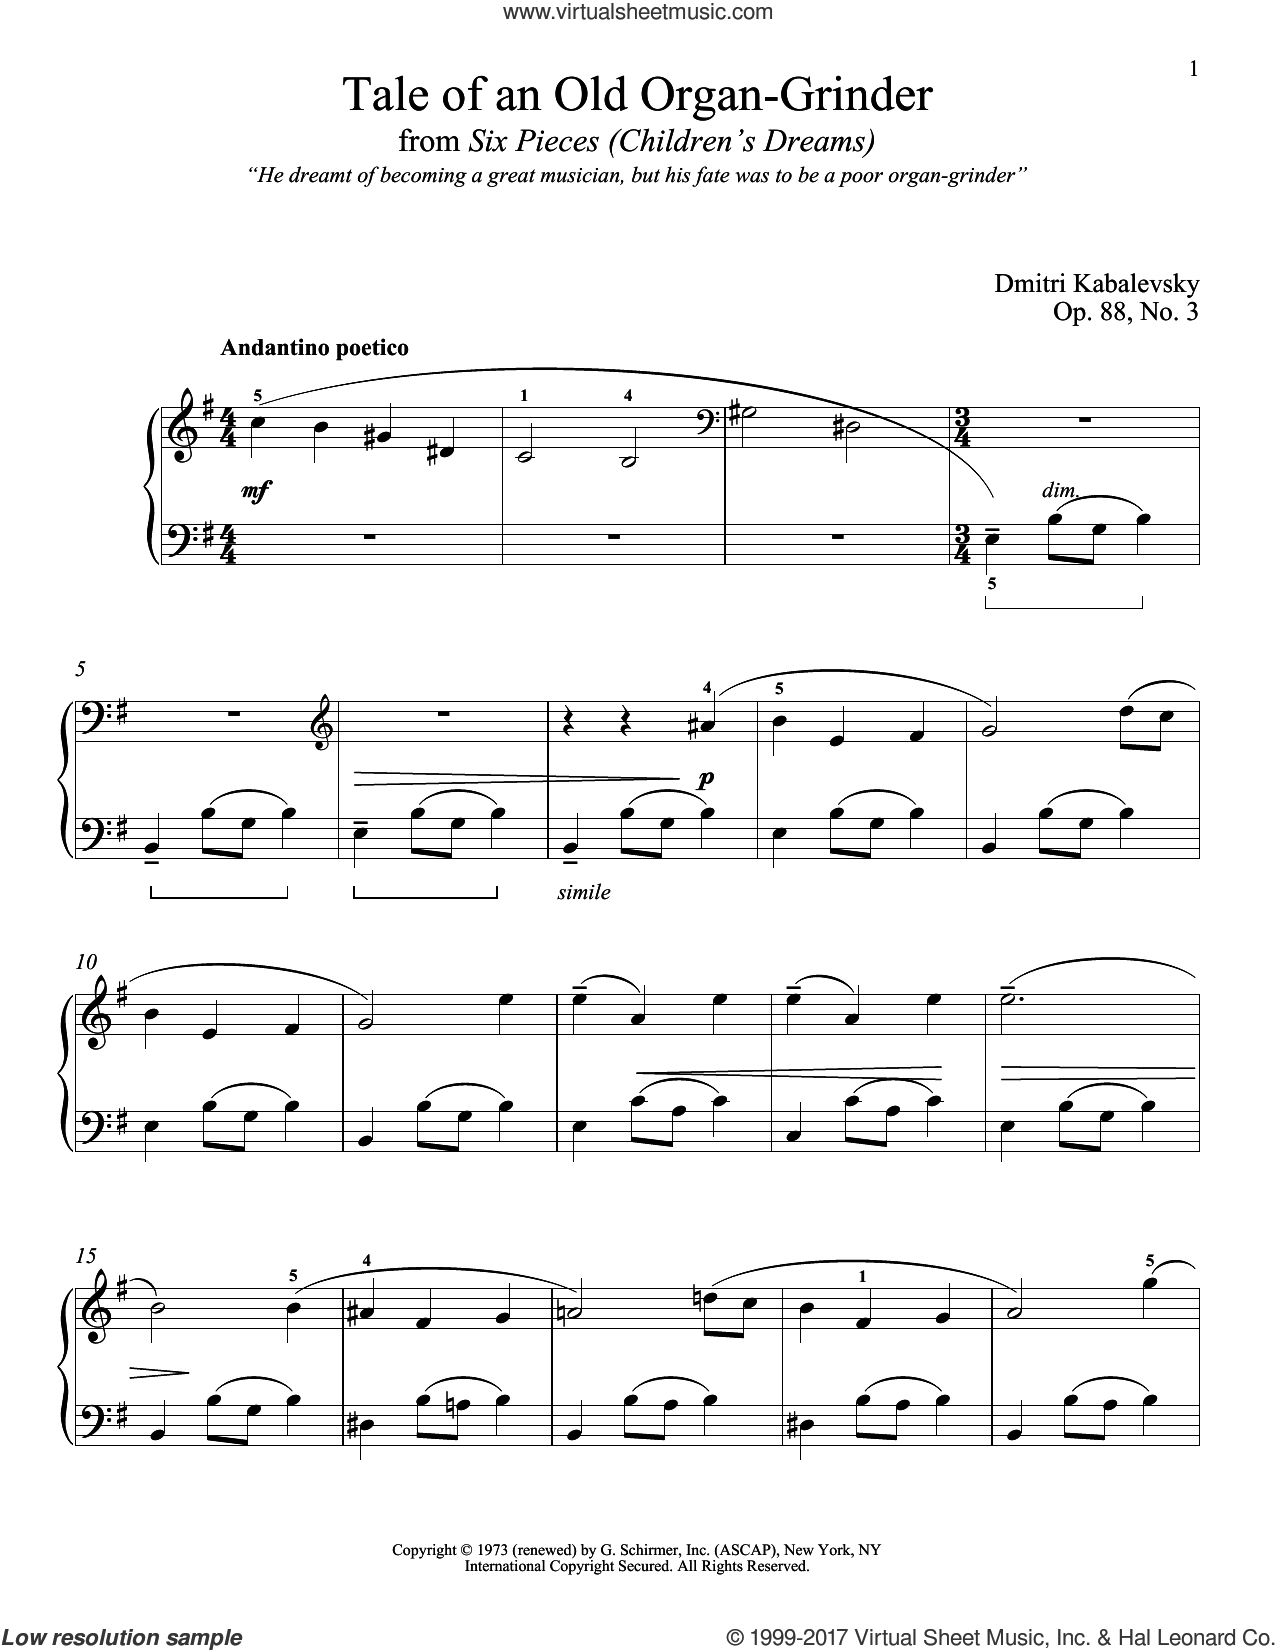 Tale Of An Old Organ-Grinder, Op. 88, No. 3 sheet music for piano solo by Dmitri Kabalevsky, classical score, intermediate skill level